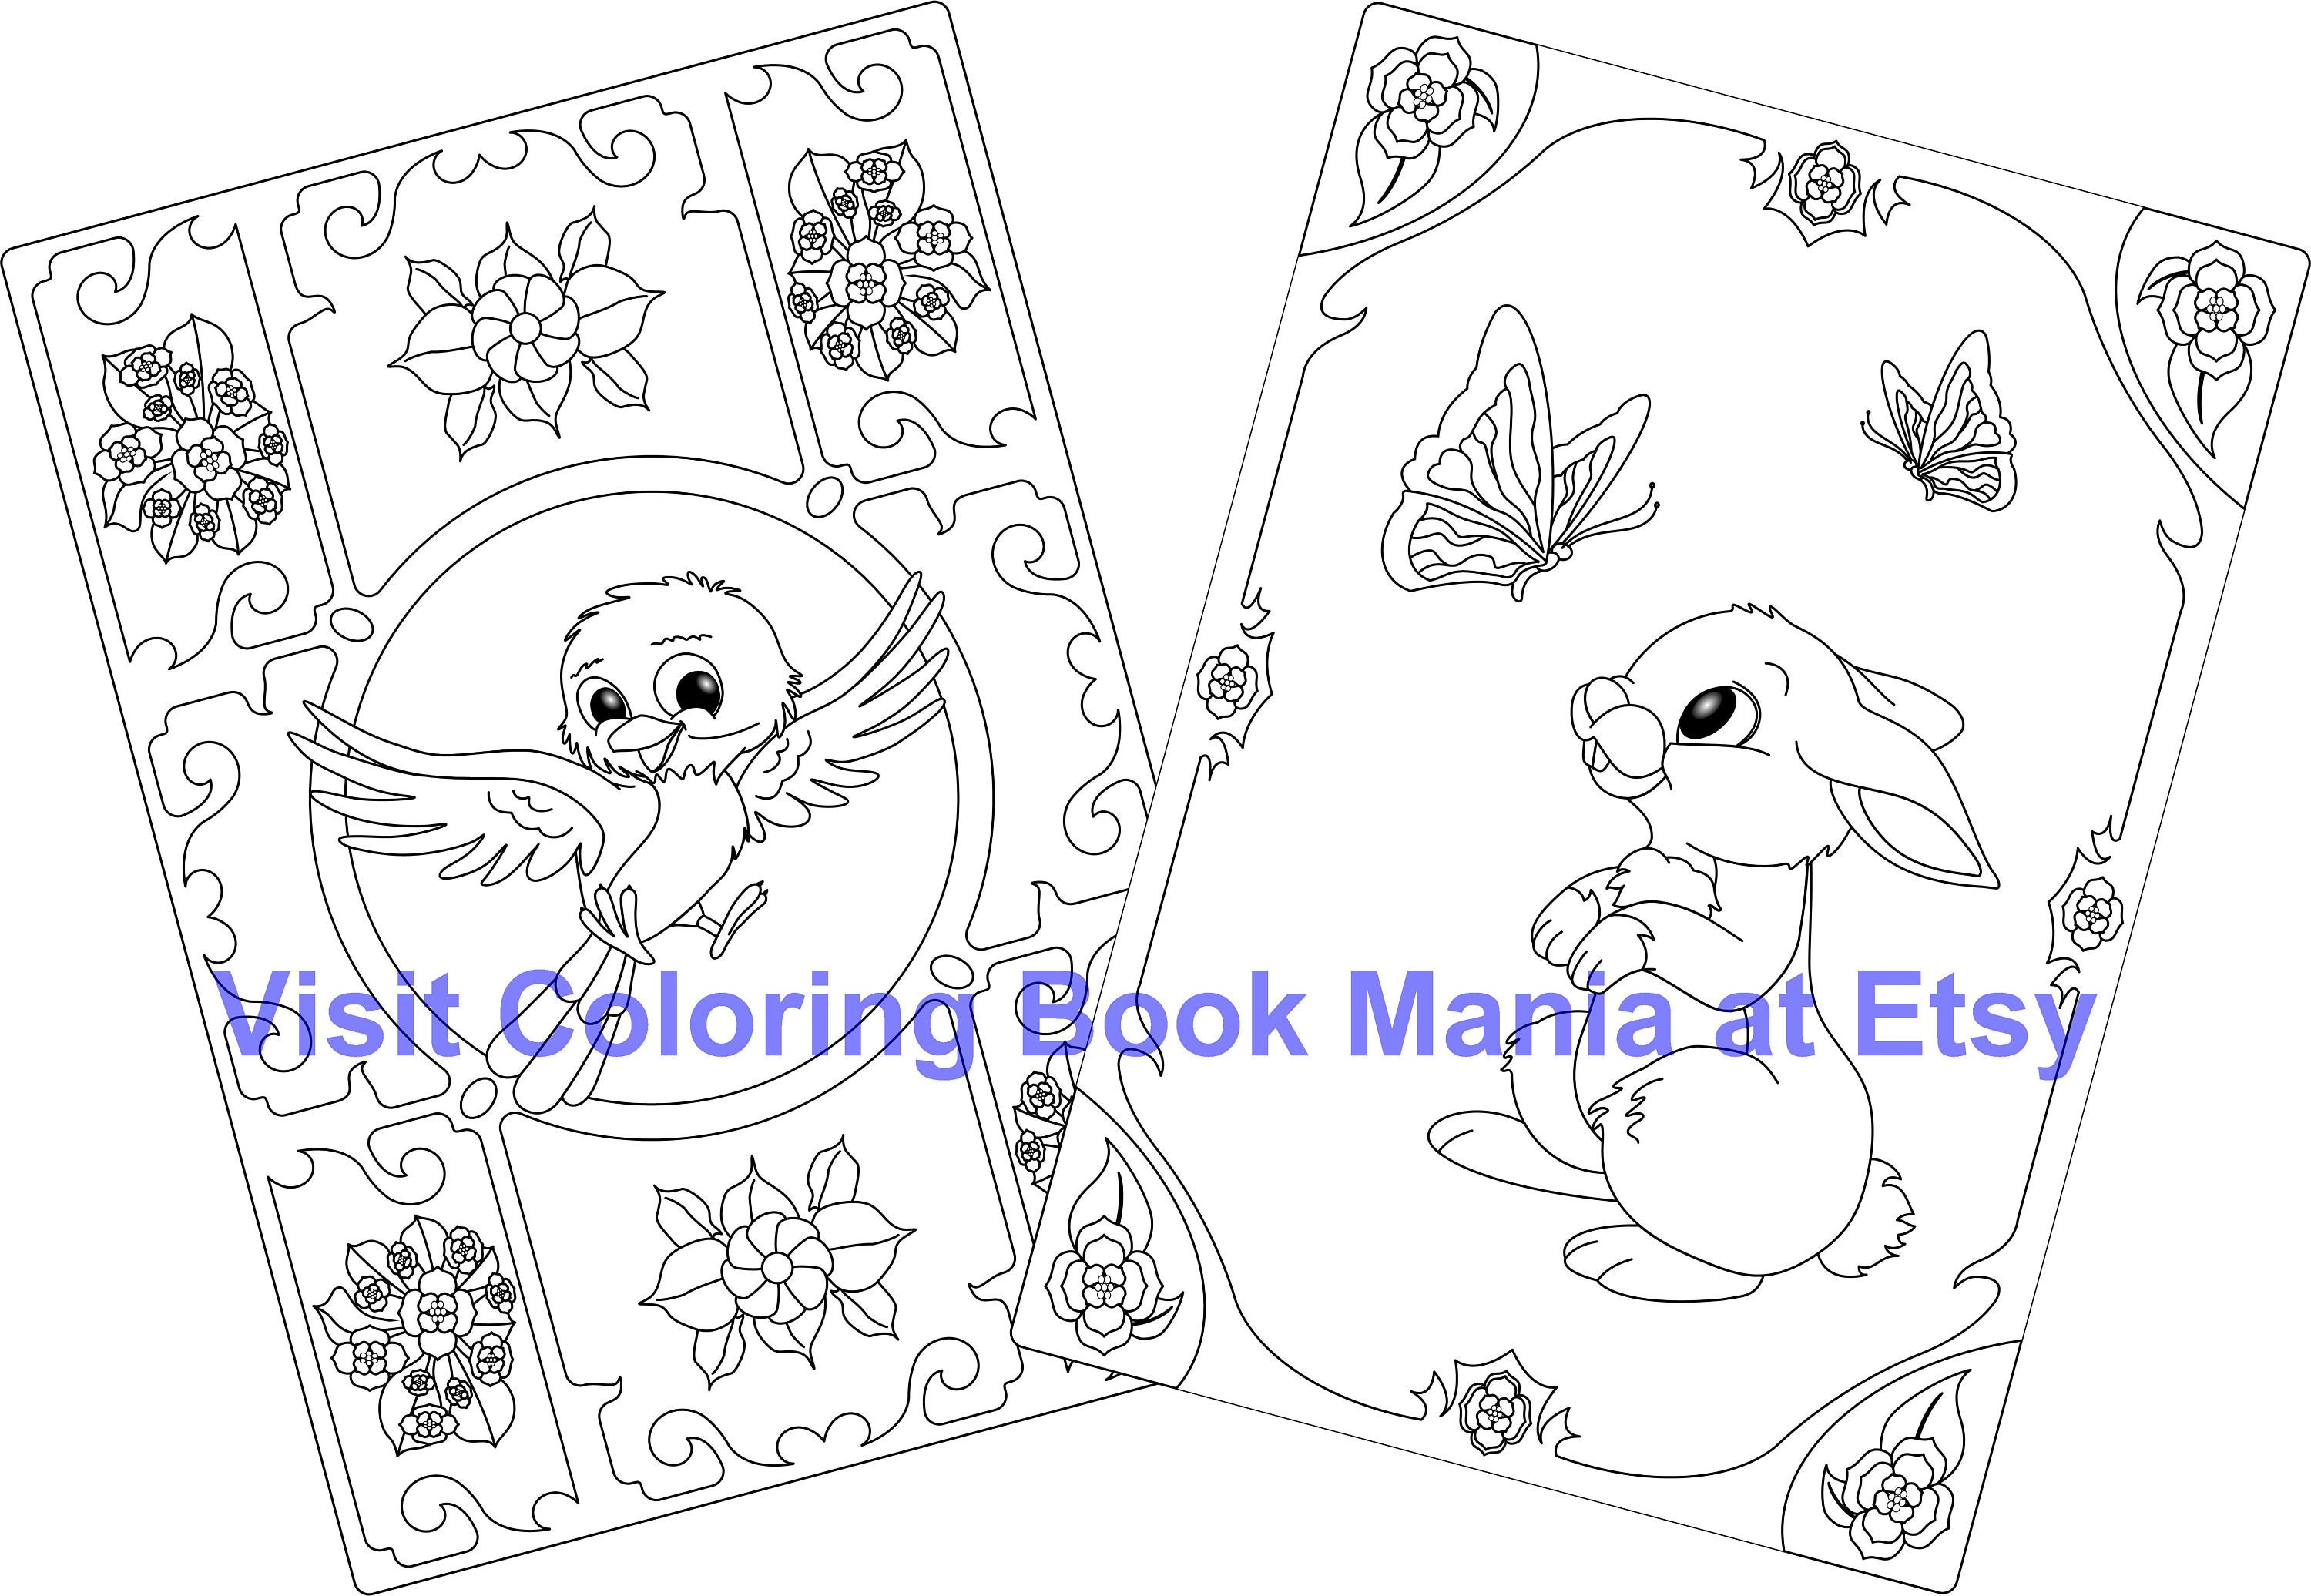 The coloring book of cards and envelopes flowers and butterflies - Celebrate Spring With 4 Note Cards To Color Happy Bird X2 And Rabbit With Butterflies X2 4 Cards Envelopes